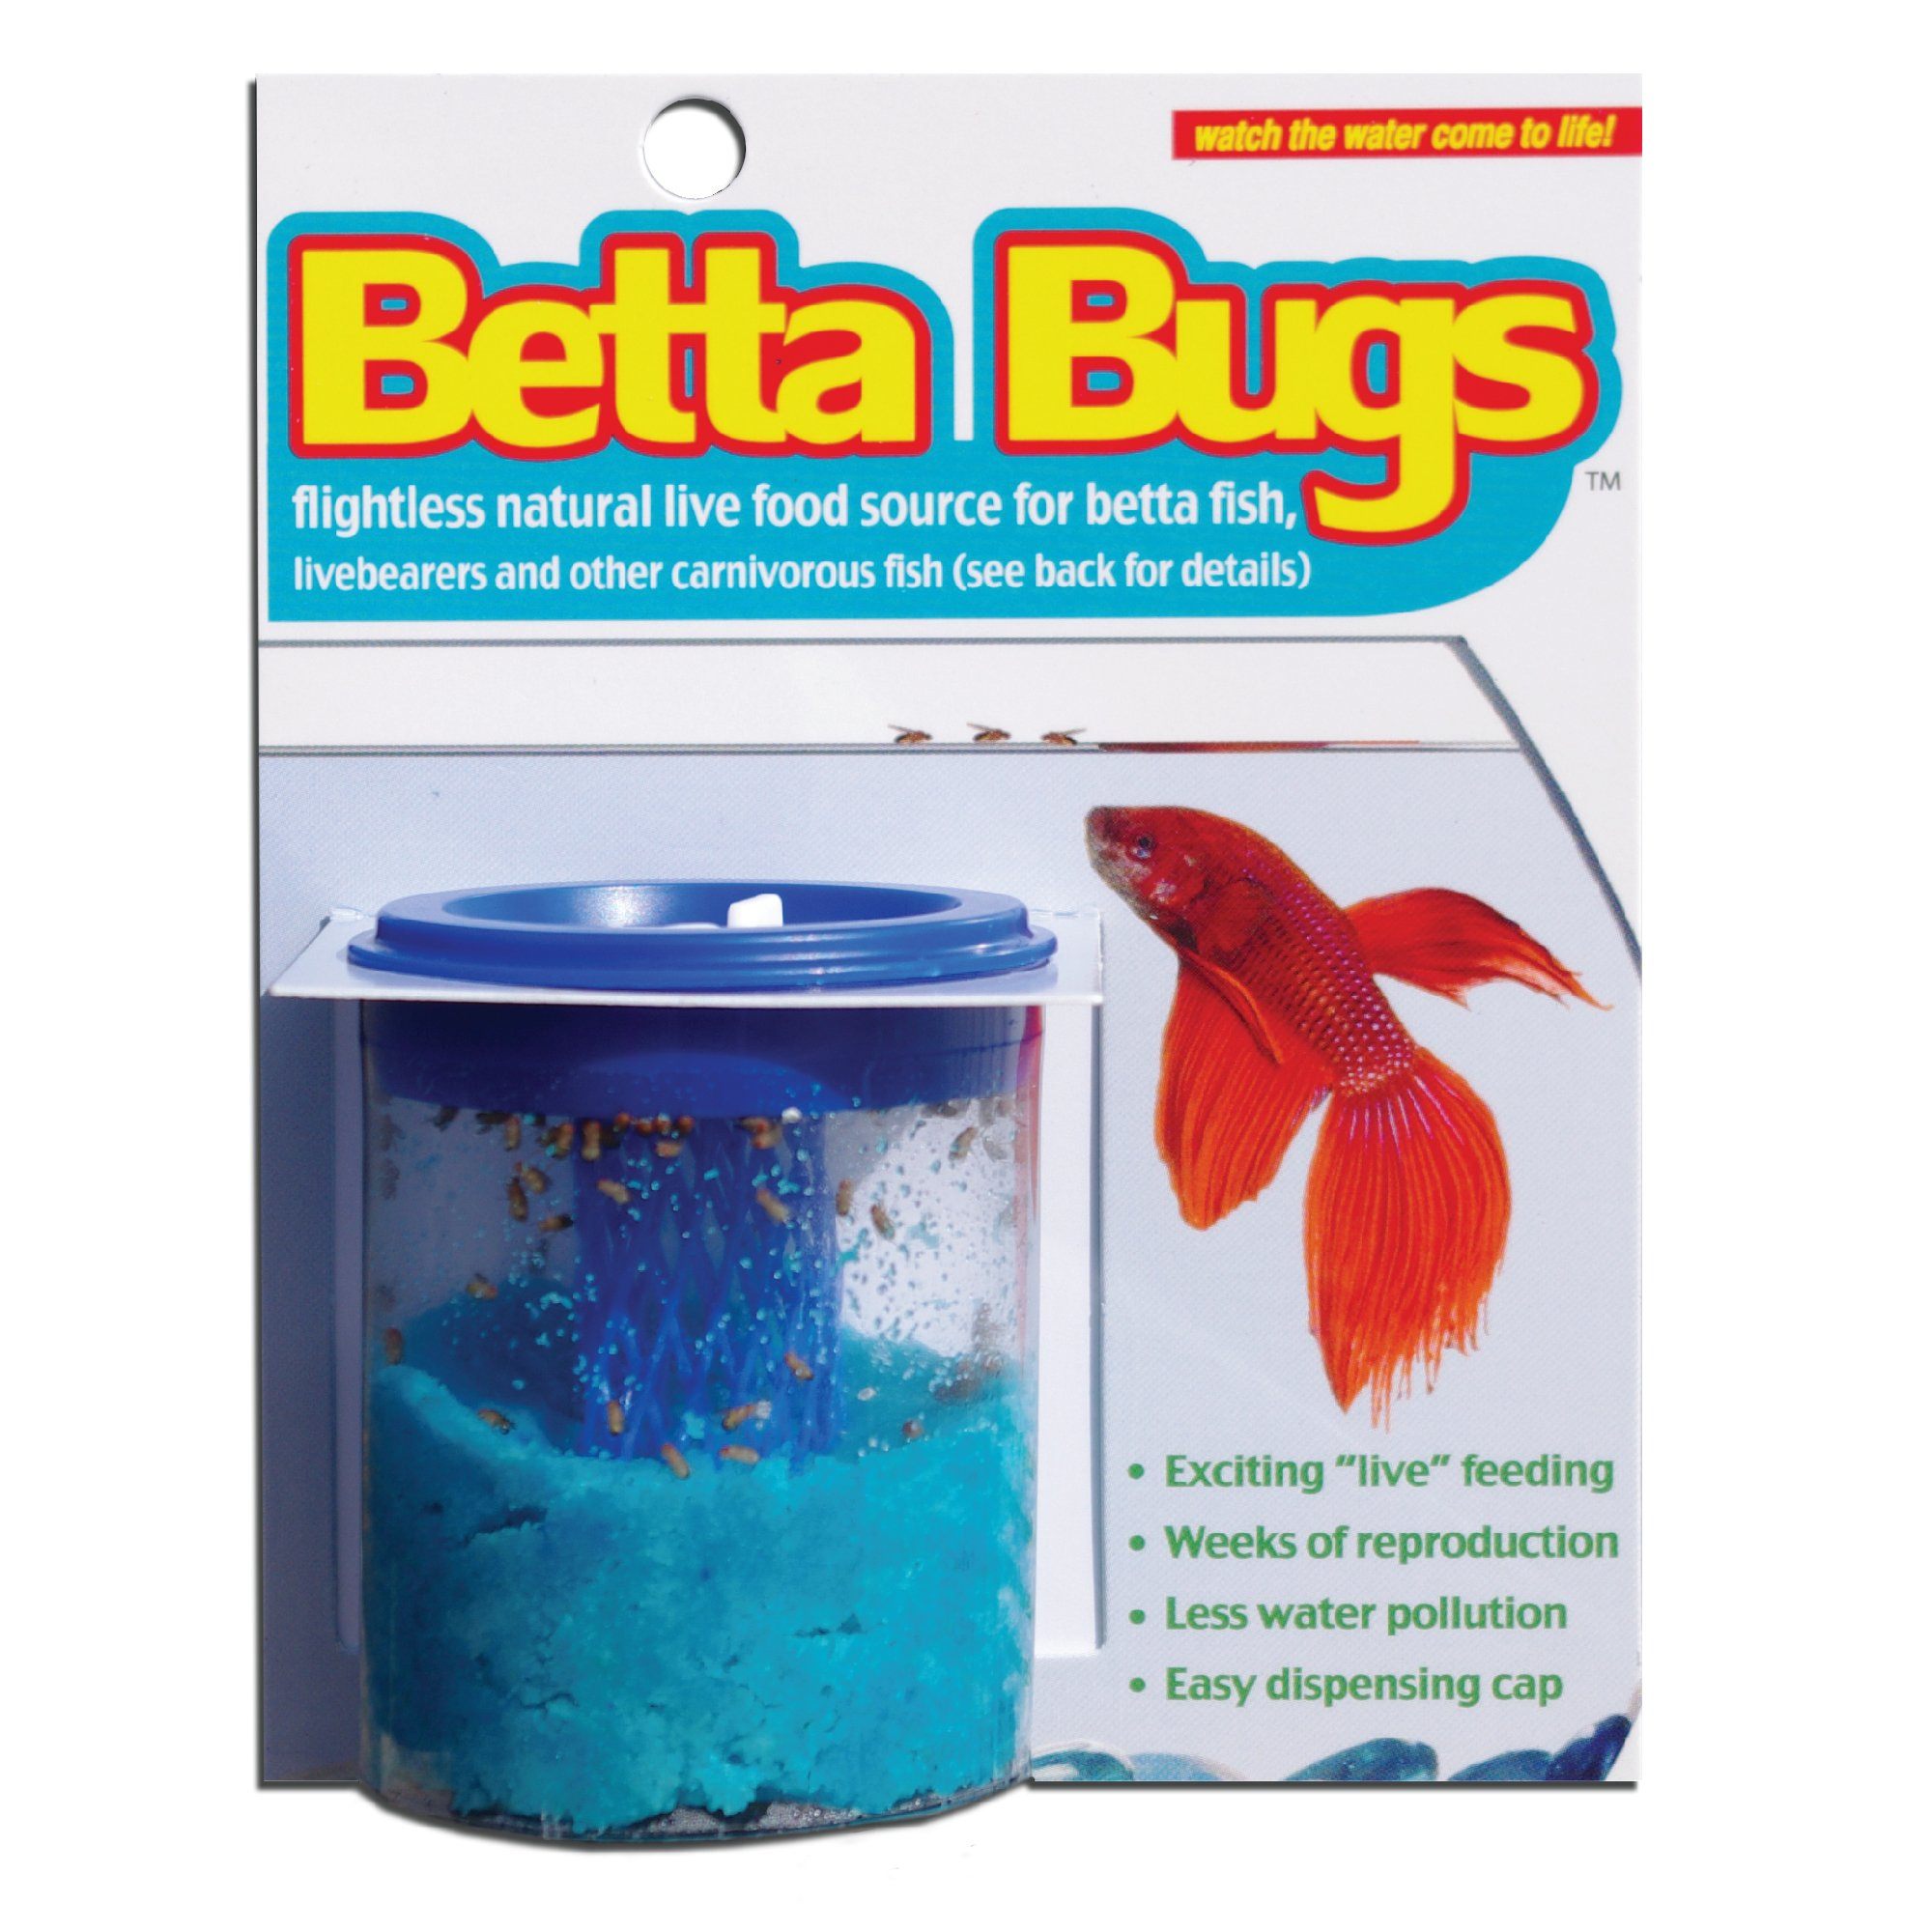 Timberline betta bugs petco for Betta fish tanks petco